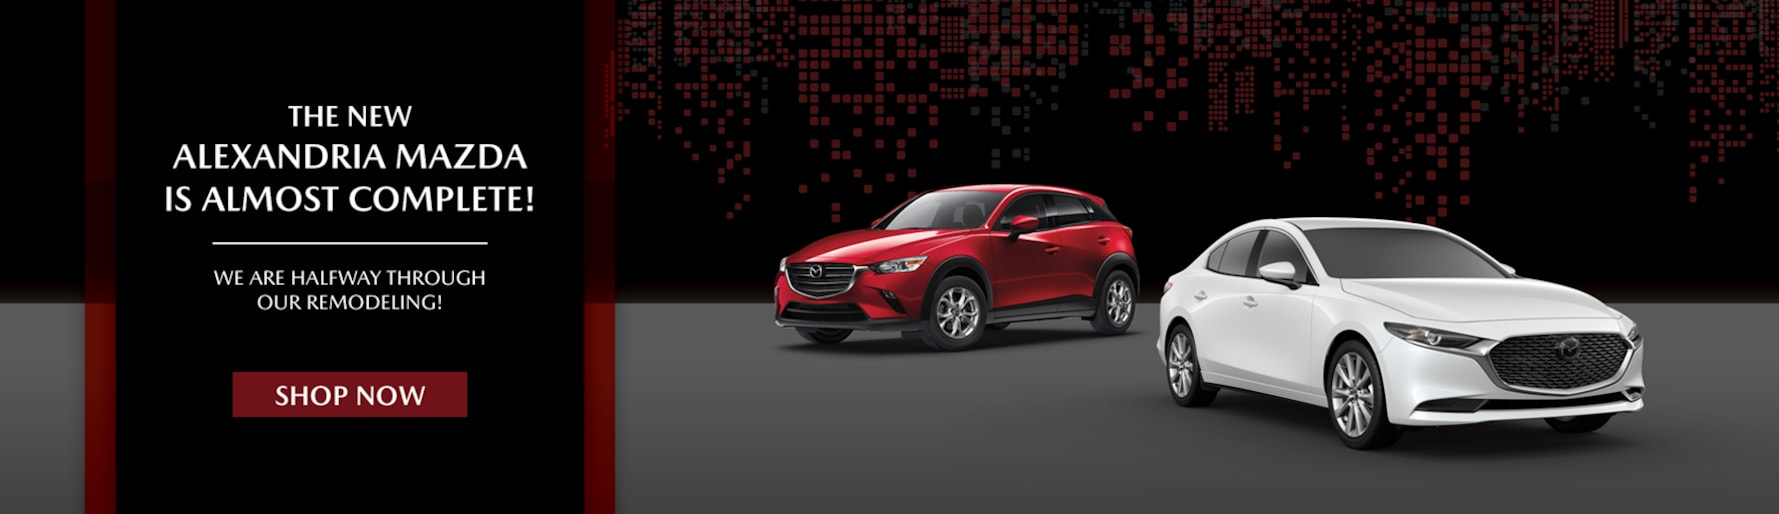 Brown'S Mazda Alexandria >> Brown S Alexandria Mazda Washington Dc Area Mazda Dealership In